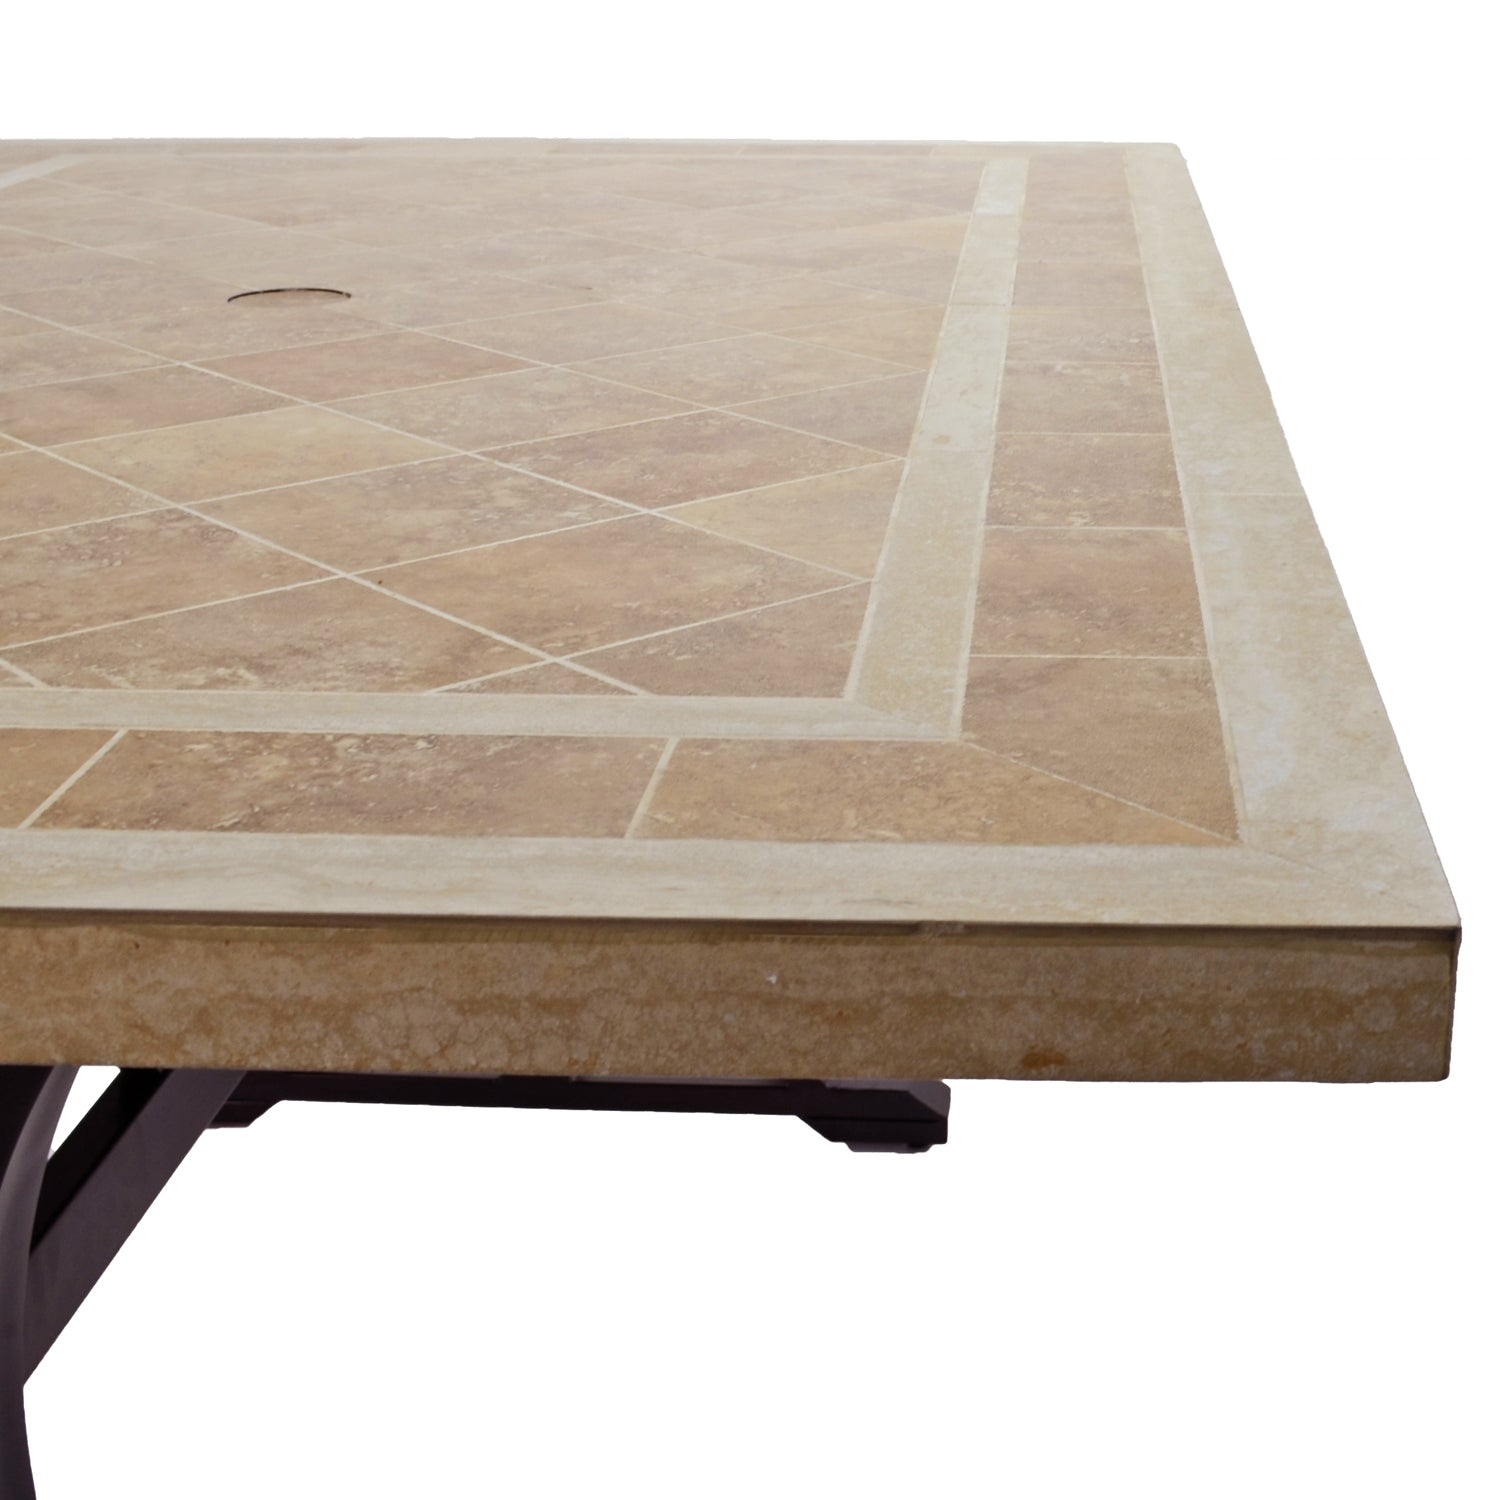 Byron Manor Hampton Dining Table - Ruby's Garden Boutique